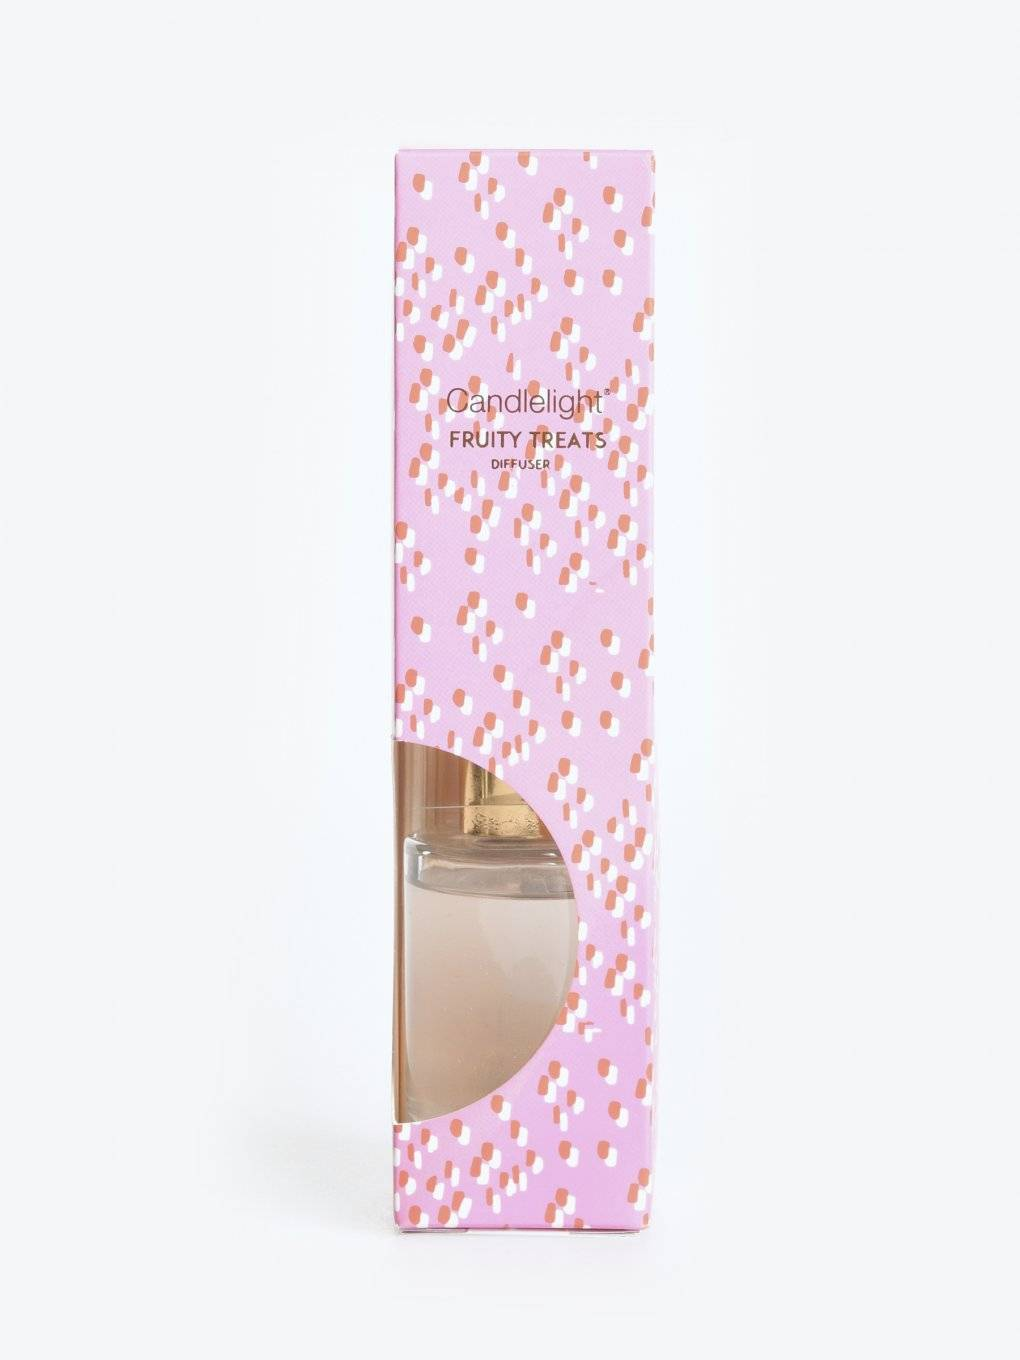 Fruity treats scented fragrance diffuser